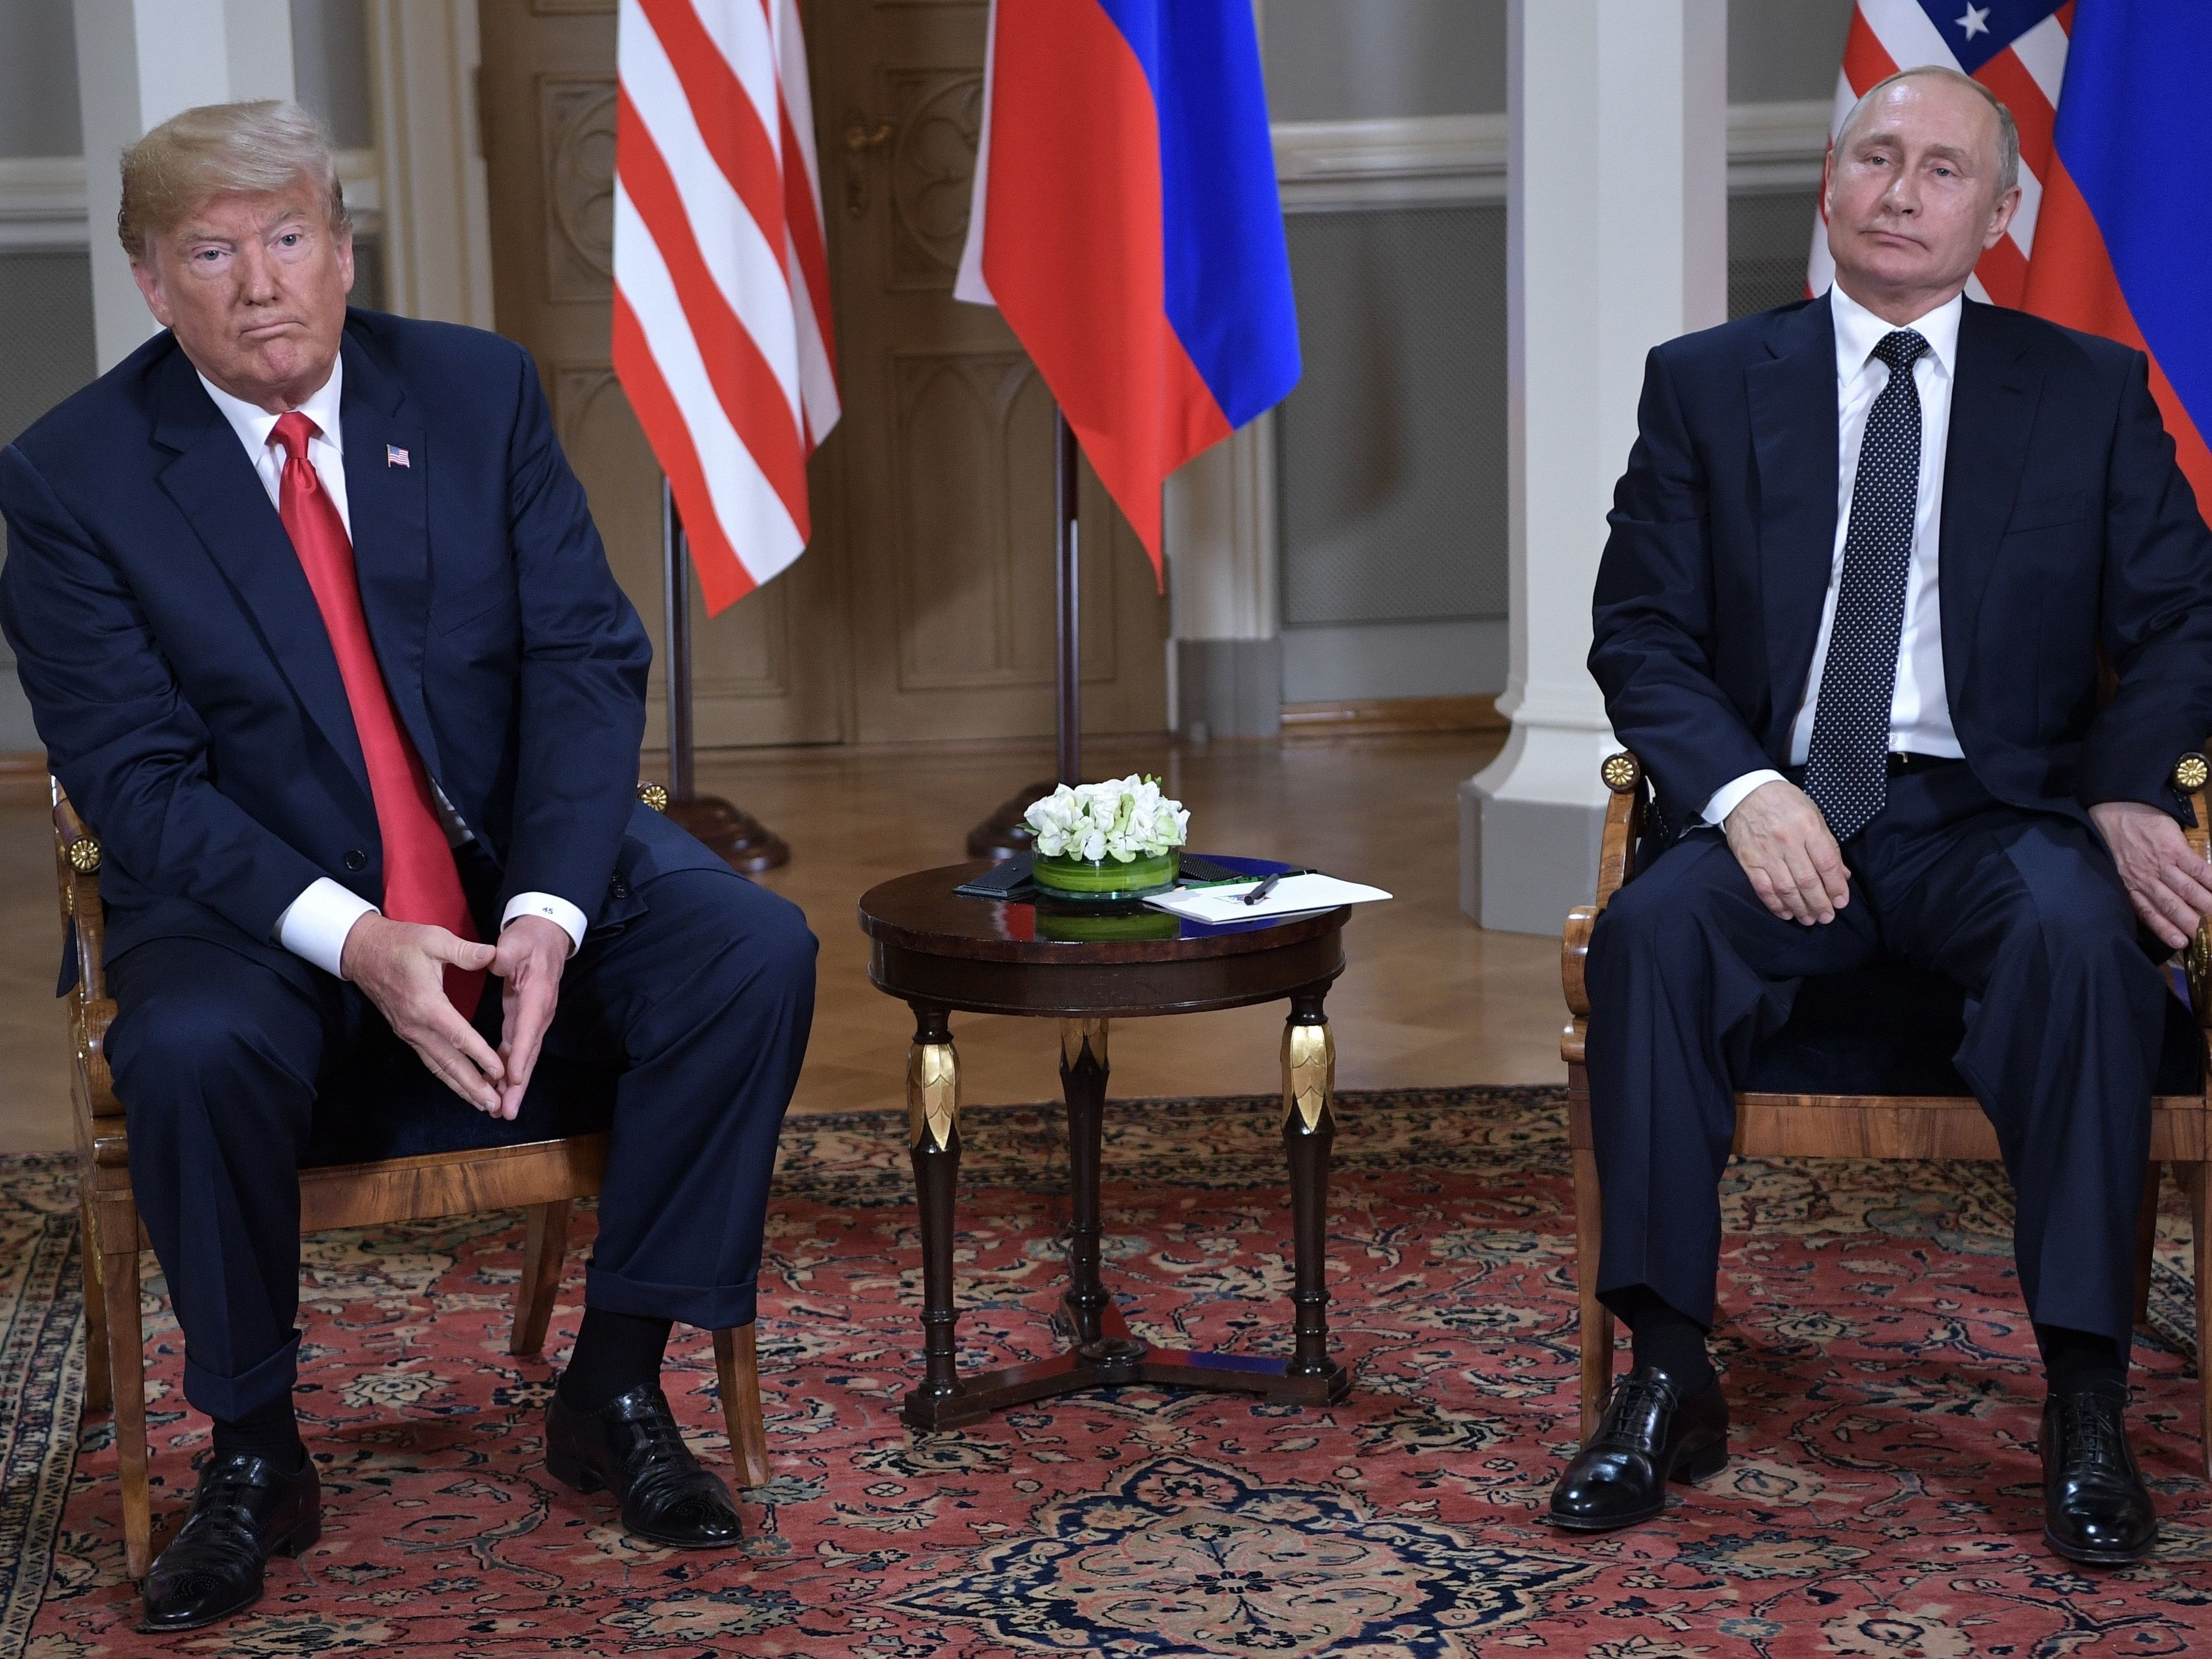 Trump Is Open To Visiting Russia If Putin Invites Him, White House Says